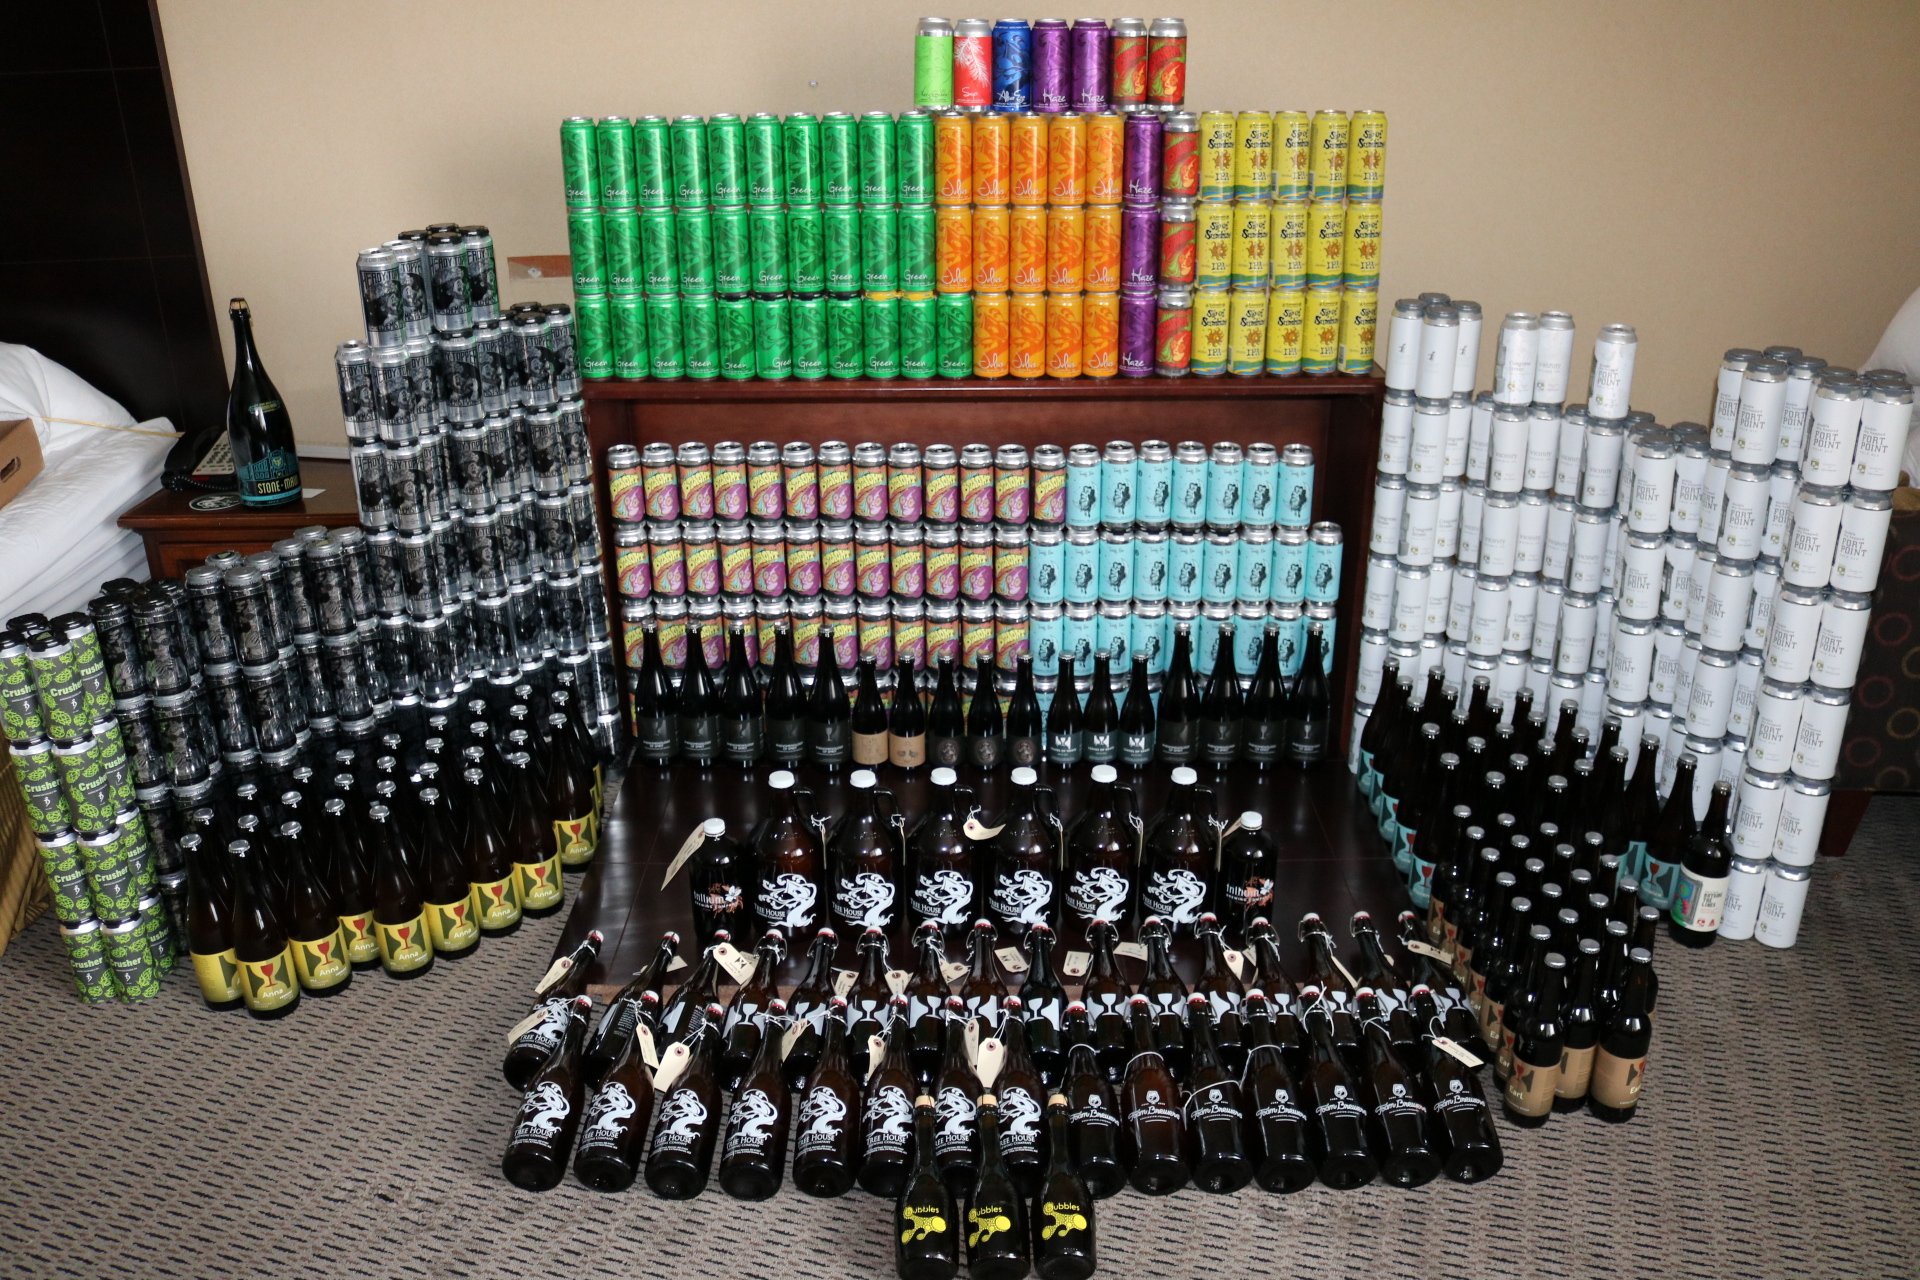 Moto Brew Tour 3 brought home over 500 cans and 200 750ml bottles to share with local craft connoisseurs.